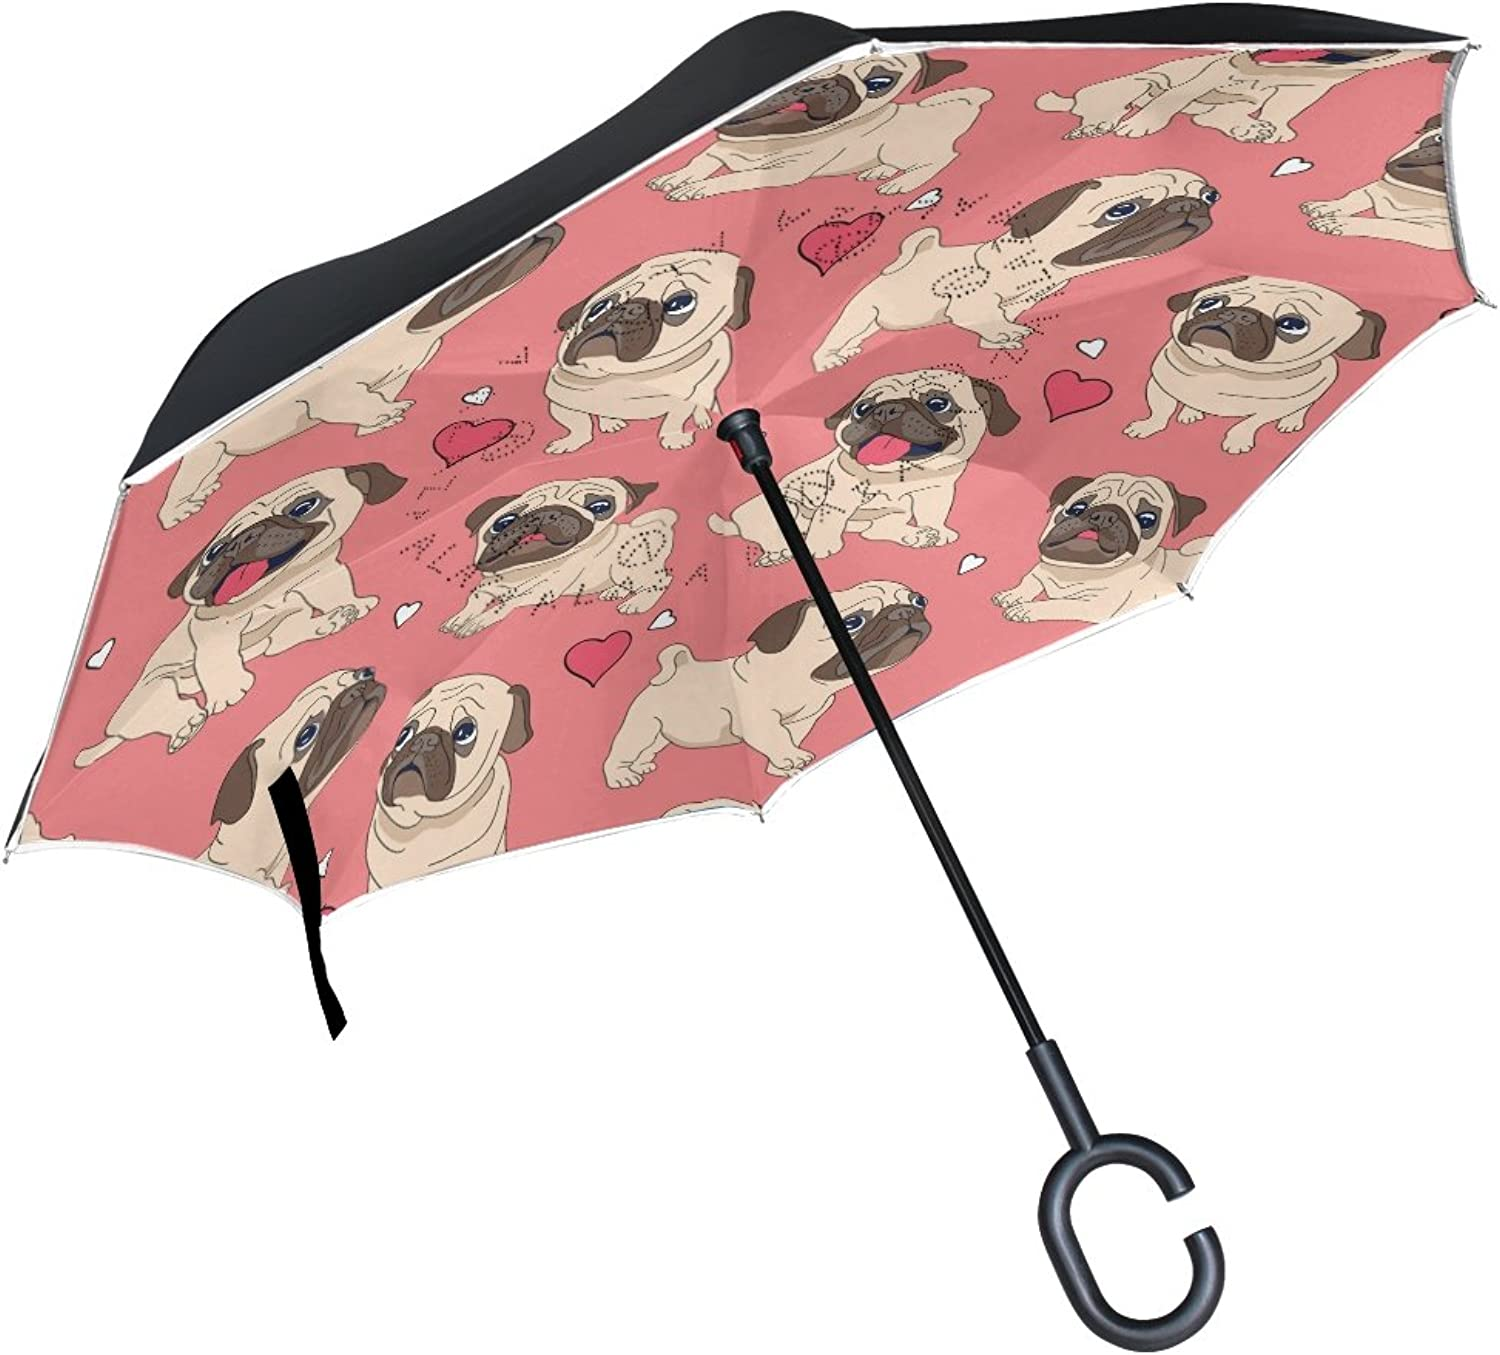 FOLPPLY Ingreened Umbrella Cute Pug Puppy Dog Pattern,Double Layer Reverse Umbrella Waterproof for Car Rain Outdoor with CShaped Handle